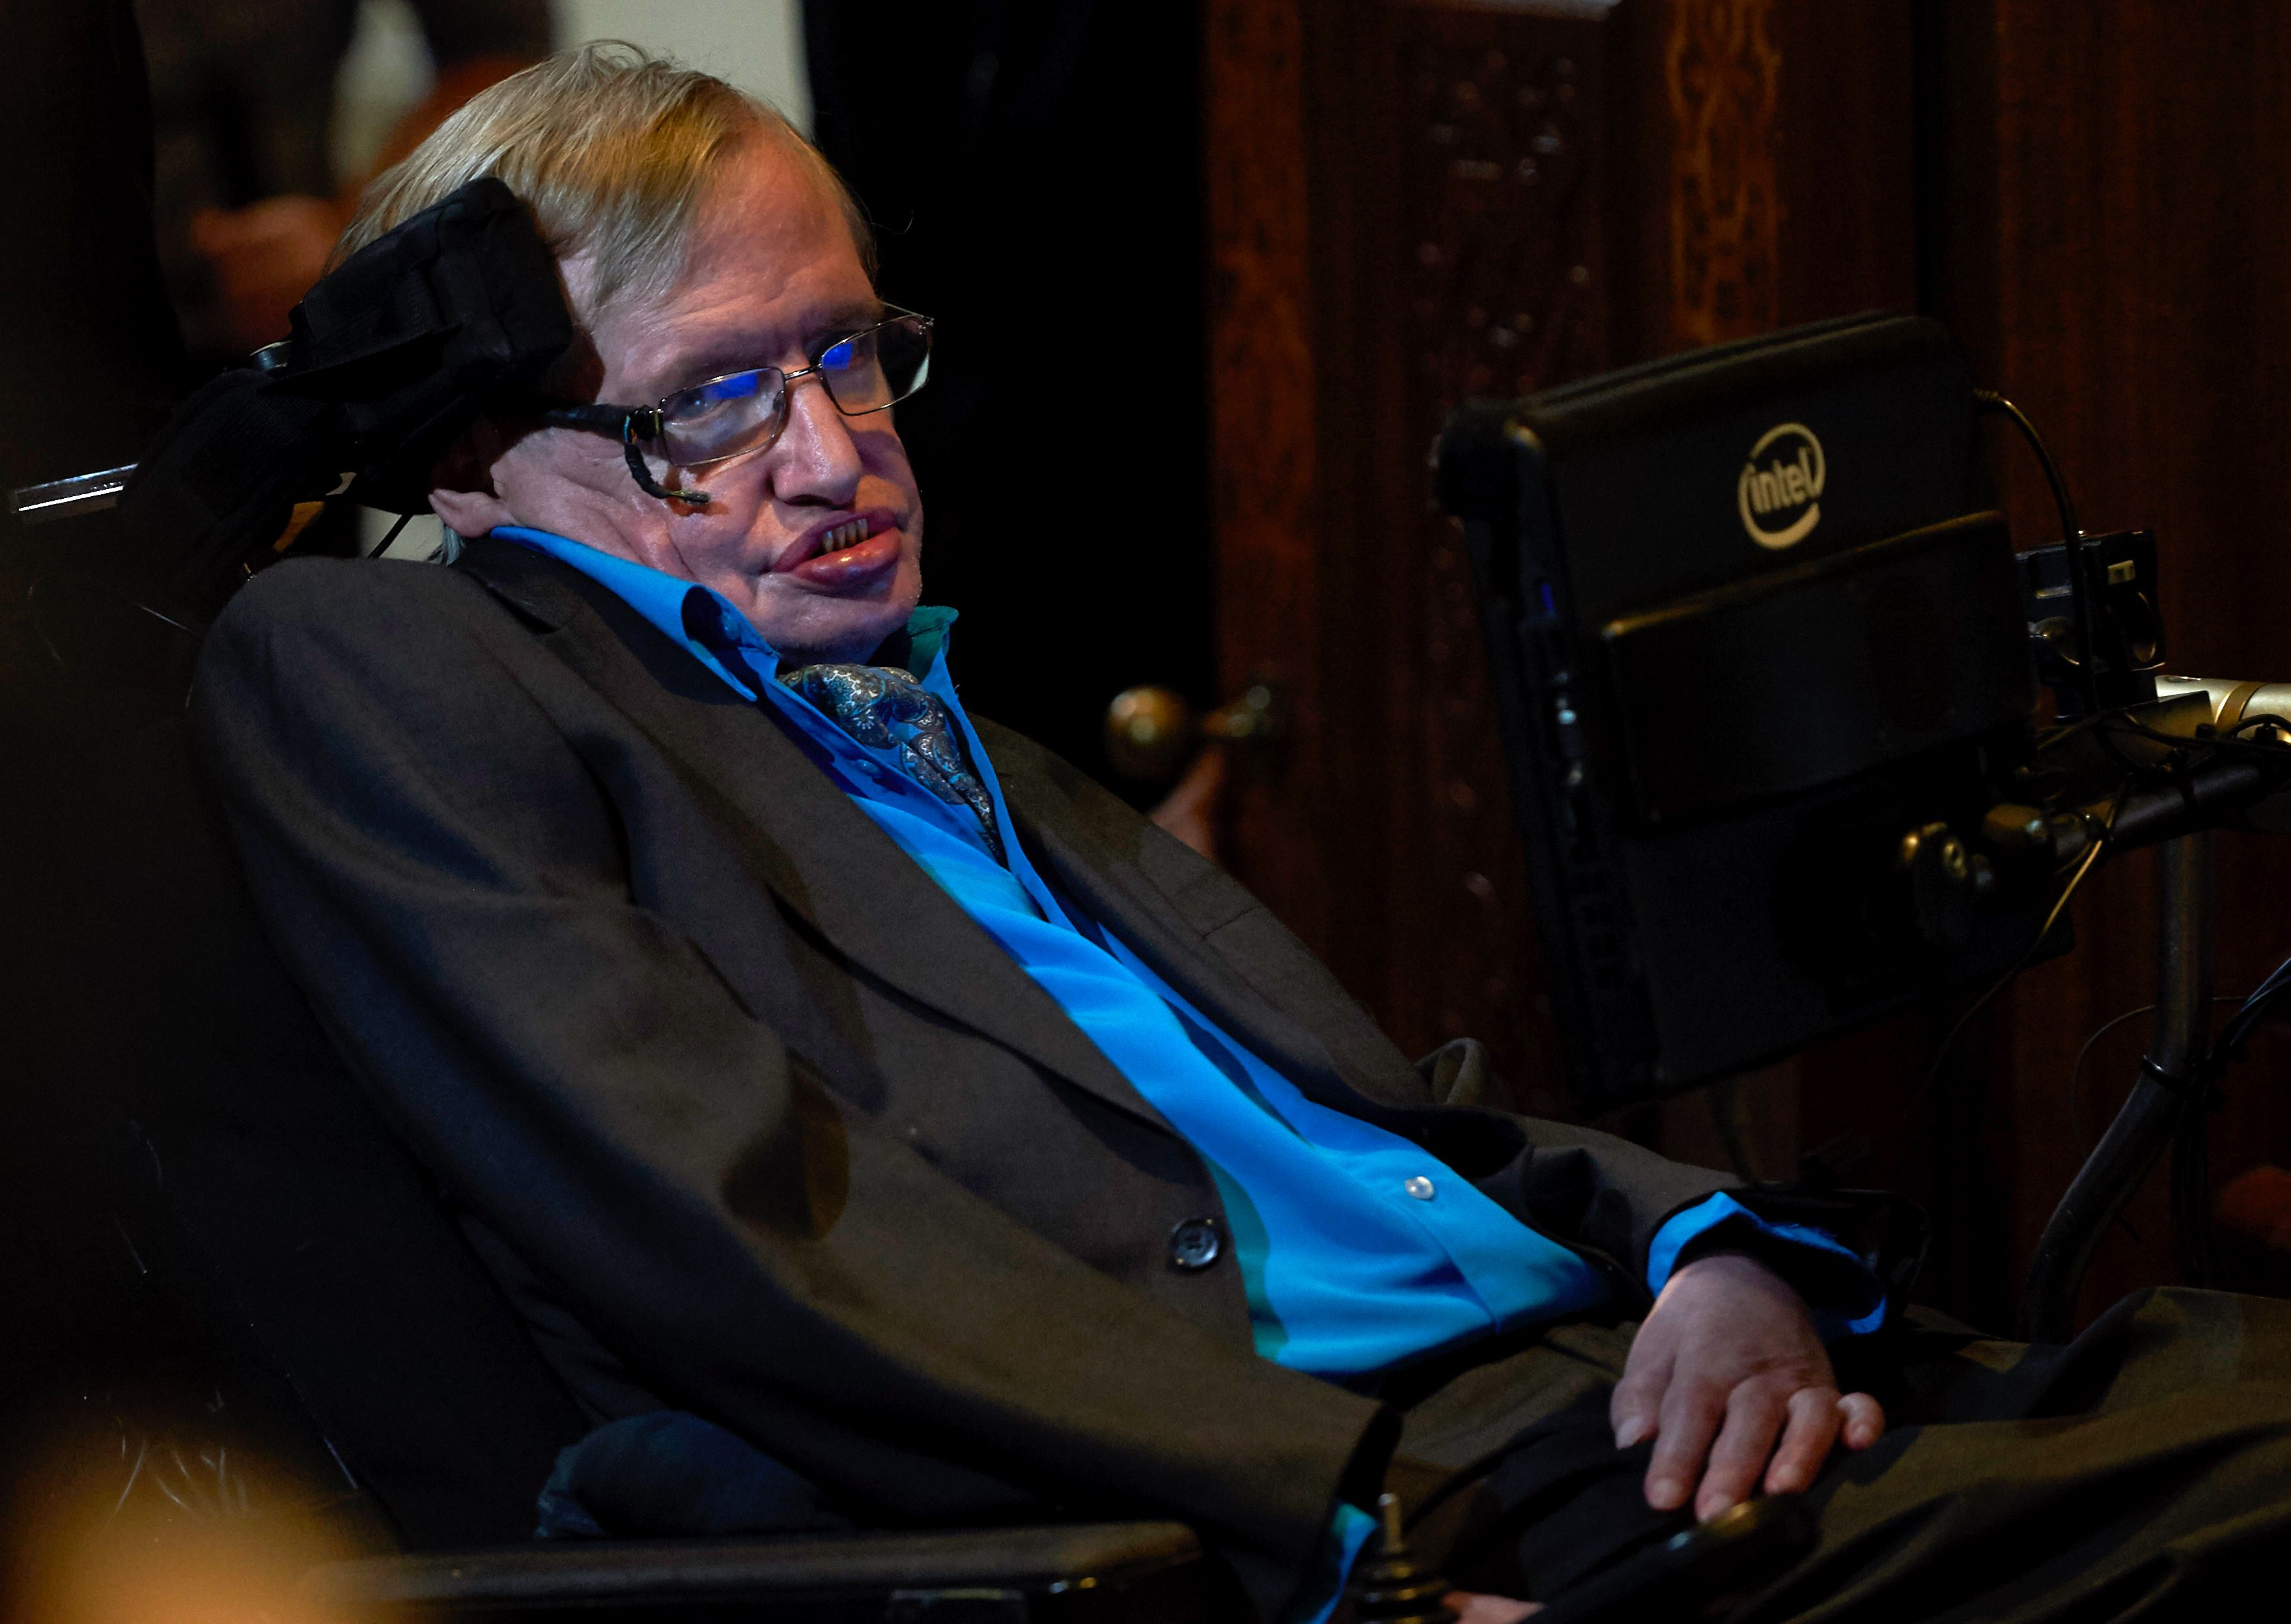 British scientist Stephen Hawking attends a press conference in London on July 20, 2015, where he and Russian entrepreneur and co-founder of the Breakthrough Prize, Yuri Milner, annouced the launch of Breakthrough Initiative, a new project to attempt to detect life in the Cosmos. Photo: AFP